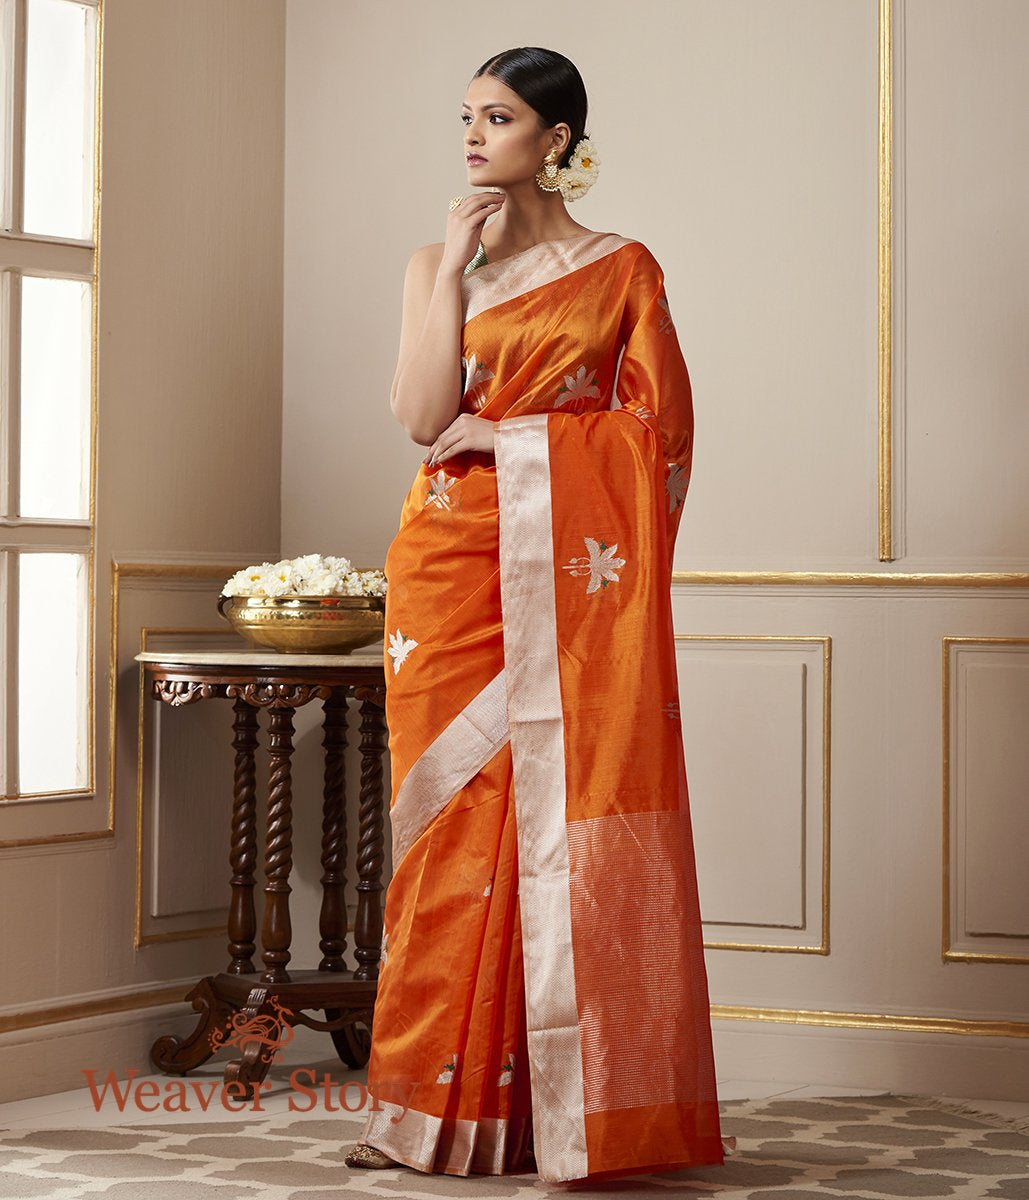 Handwoven Orange Chanderi Silk Saree with Birds on a Tree